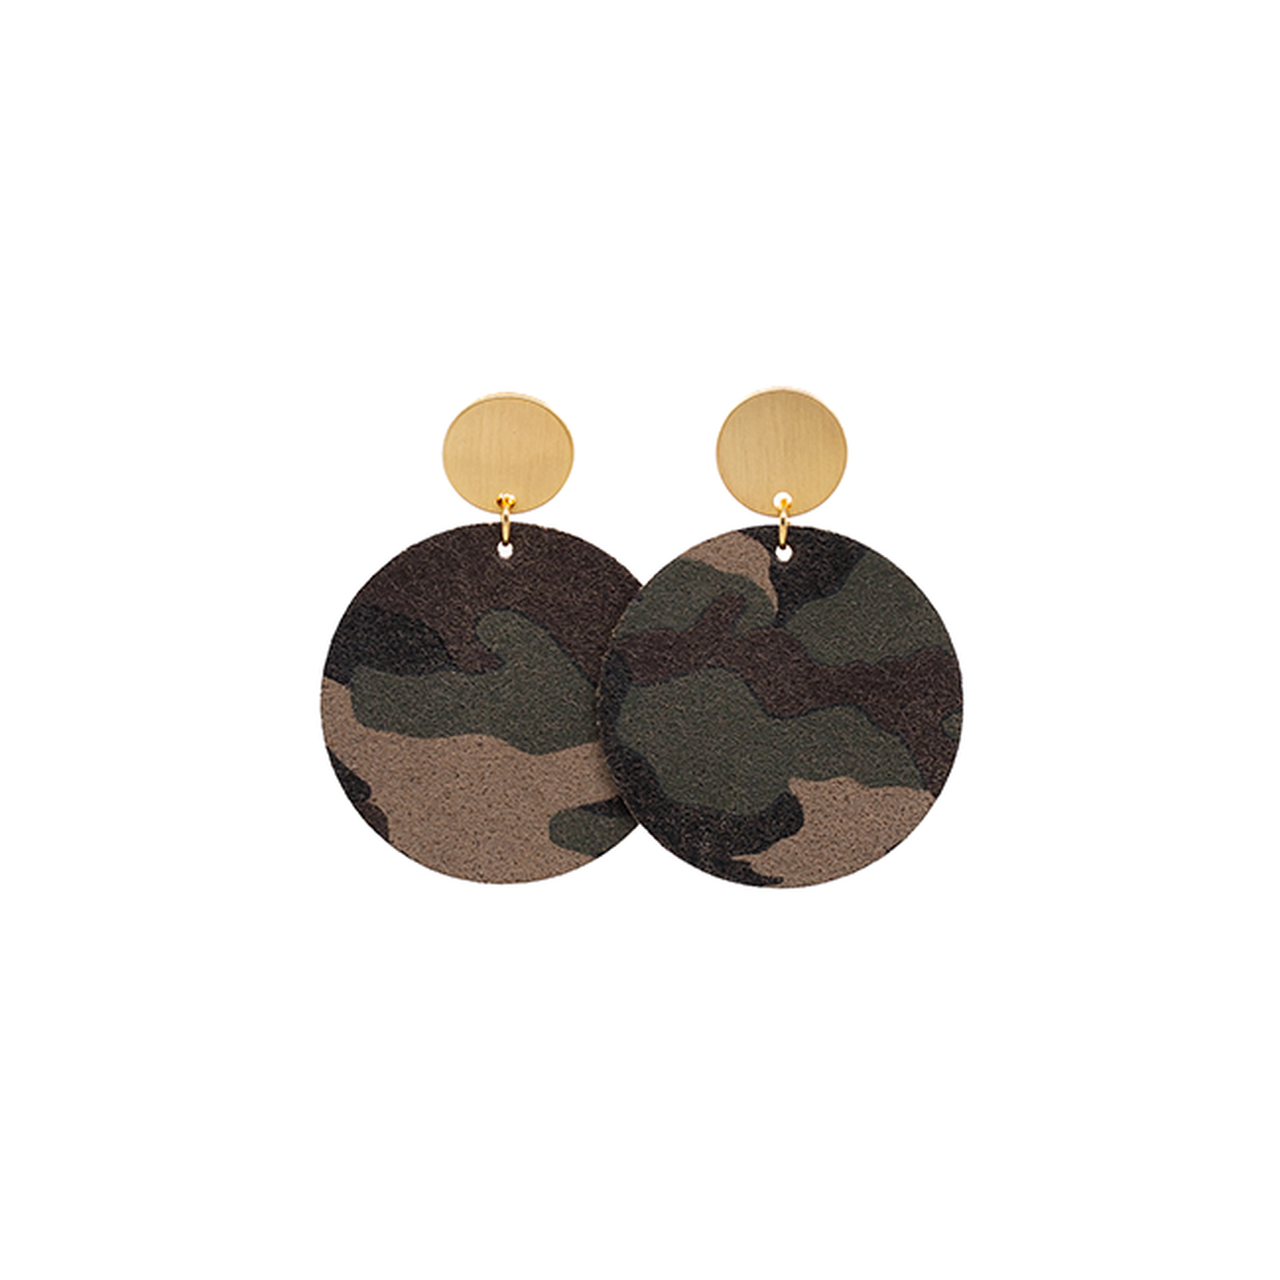 Nicket & Suede Favorite Earrings